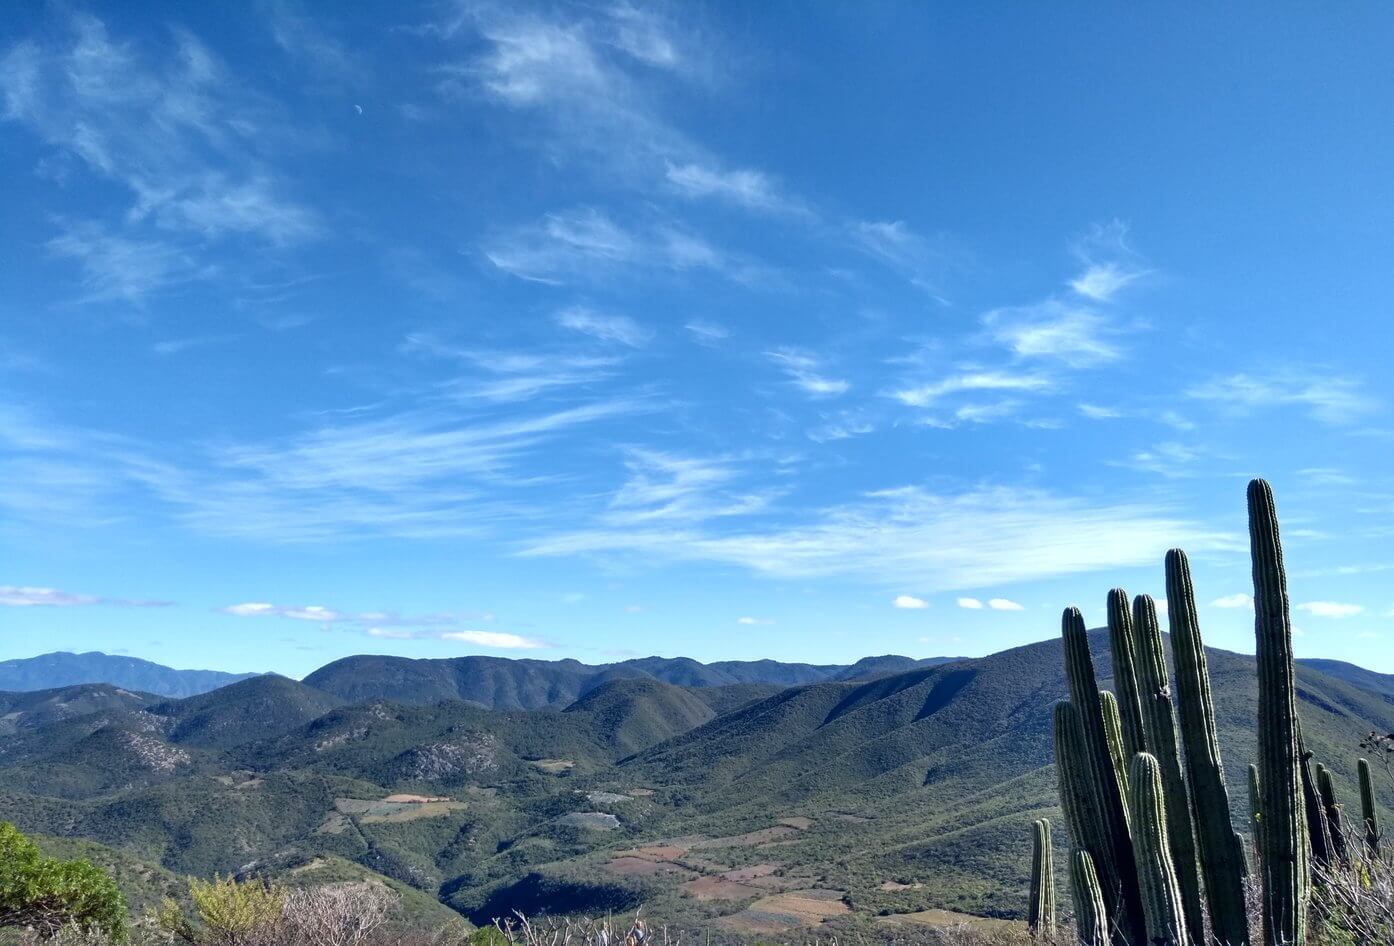 beautiful scenery in oaxaca mexico by layer culture